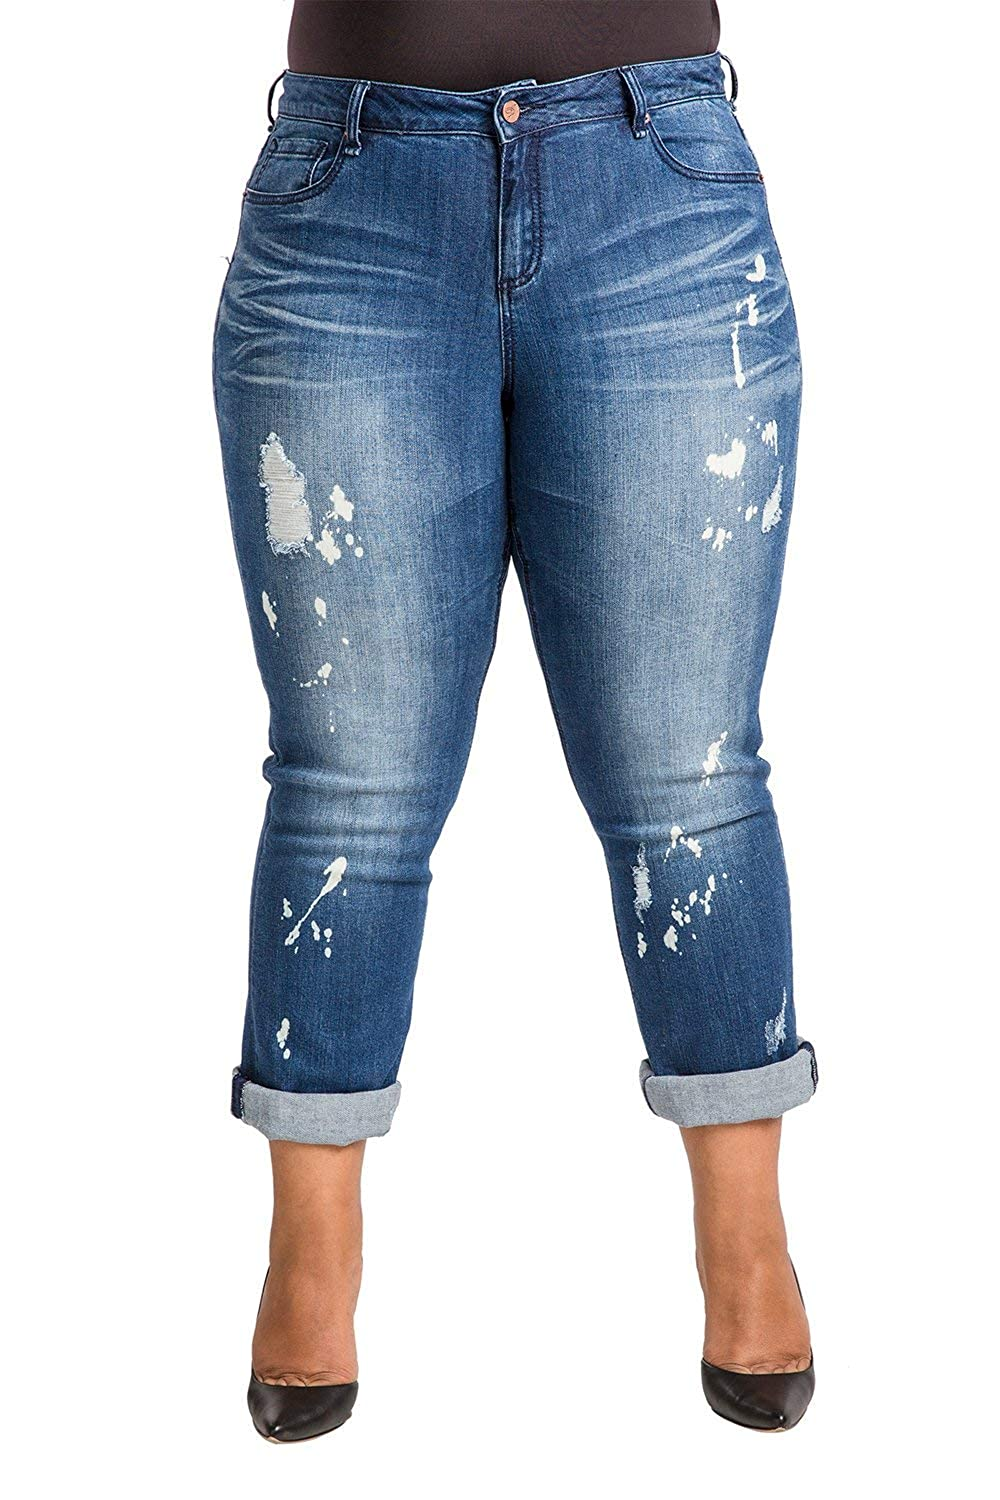 bf7cfeaa Poetic Justice Plus Size Women's Curvy Fit Blue Bleach Spots Boyfriend Jeans  at Amazon Women's Clothing store: